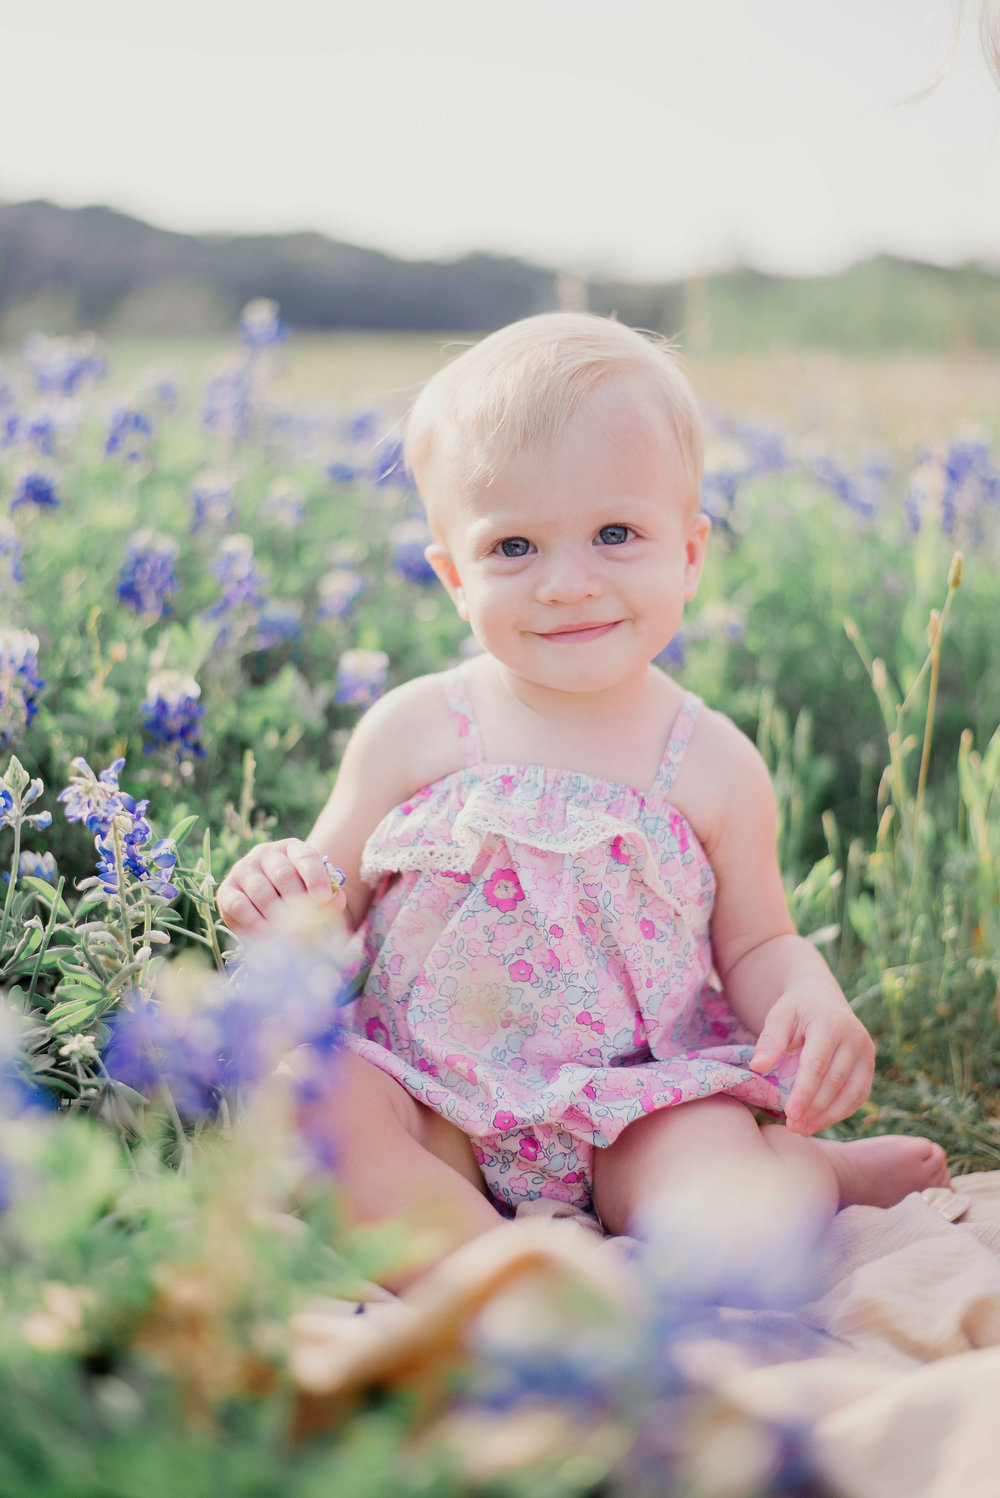 Austin Portrait Photographer First Birthday Session Texas Wildflowers Bluebonnets020.jpg